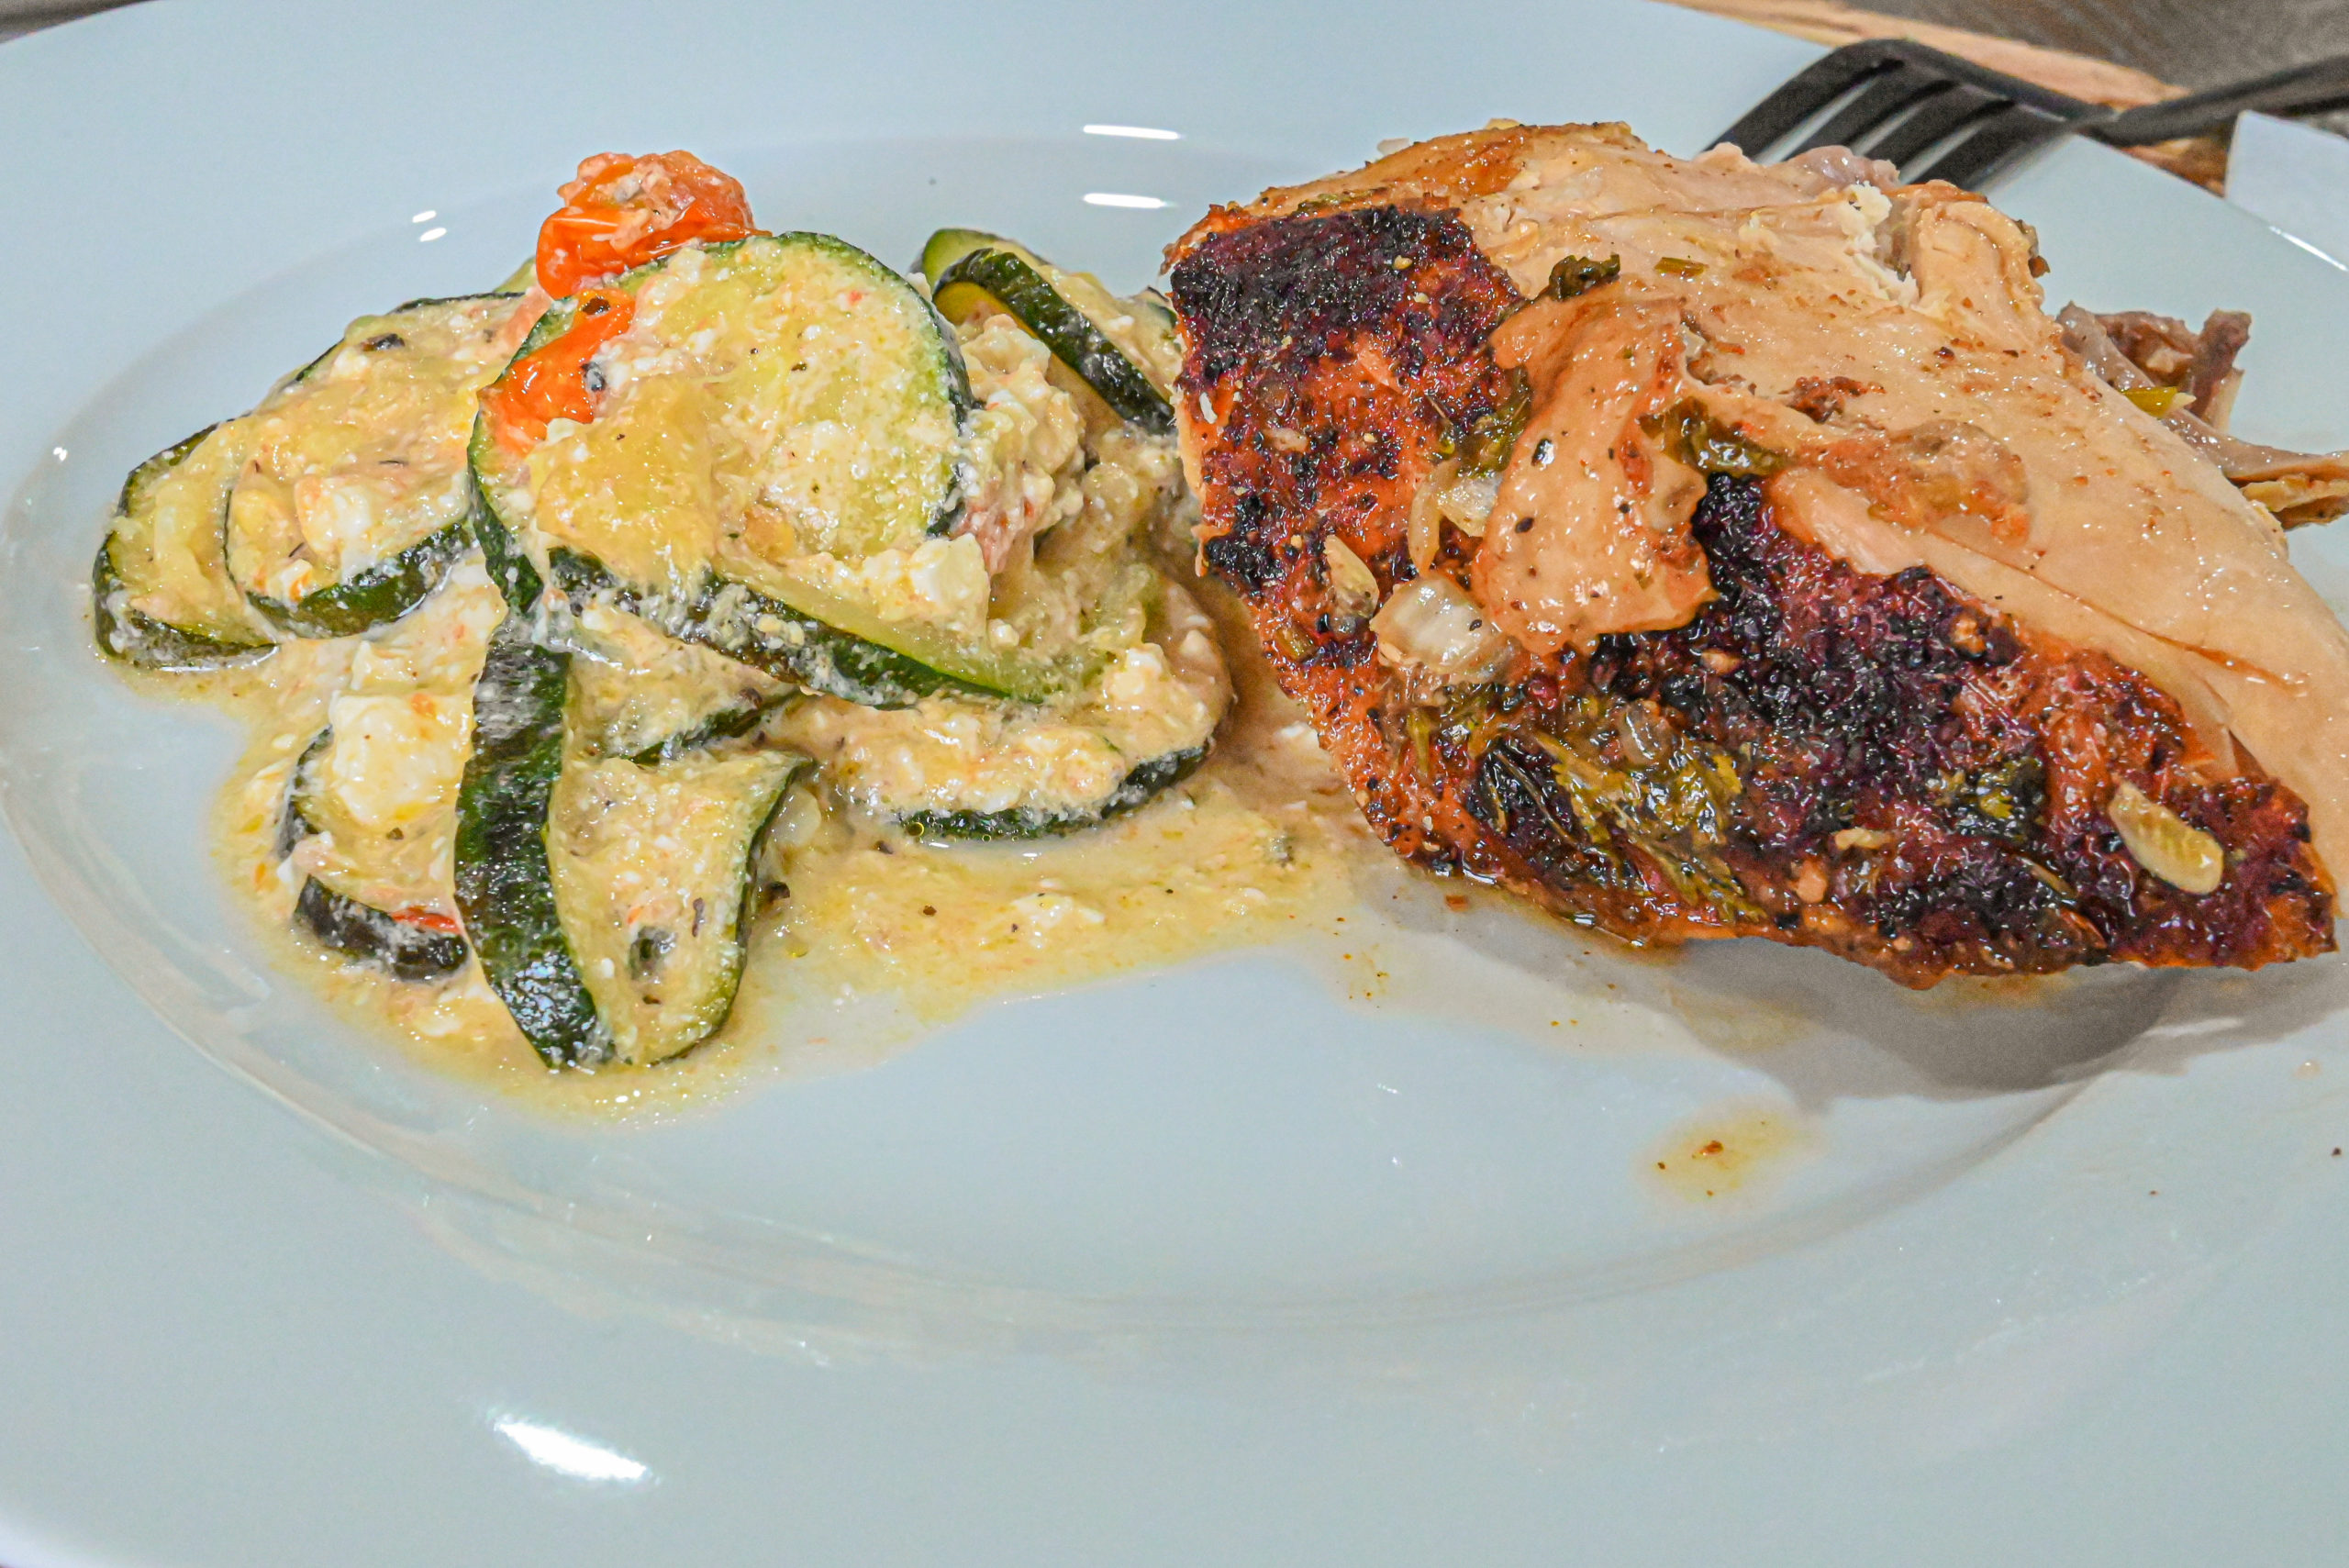 keto baked feta zucchini served with roasted chicken on white plate